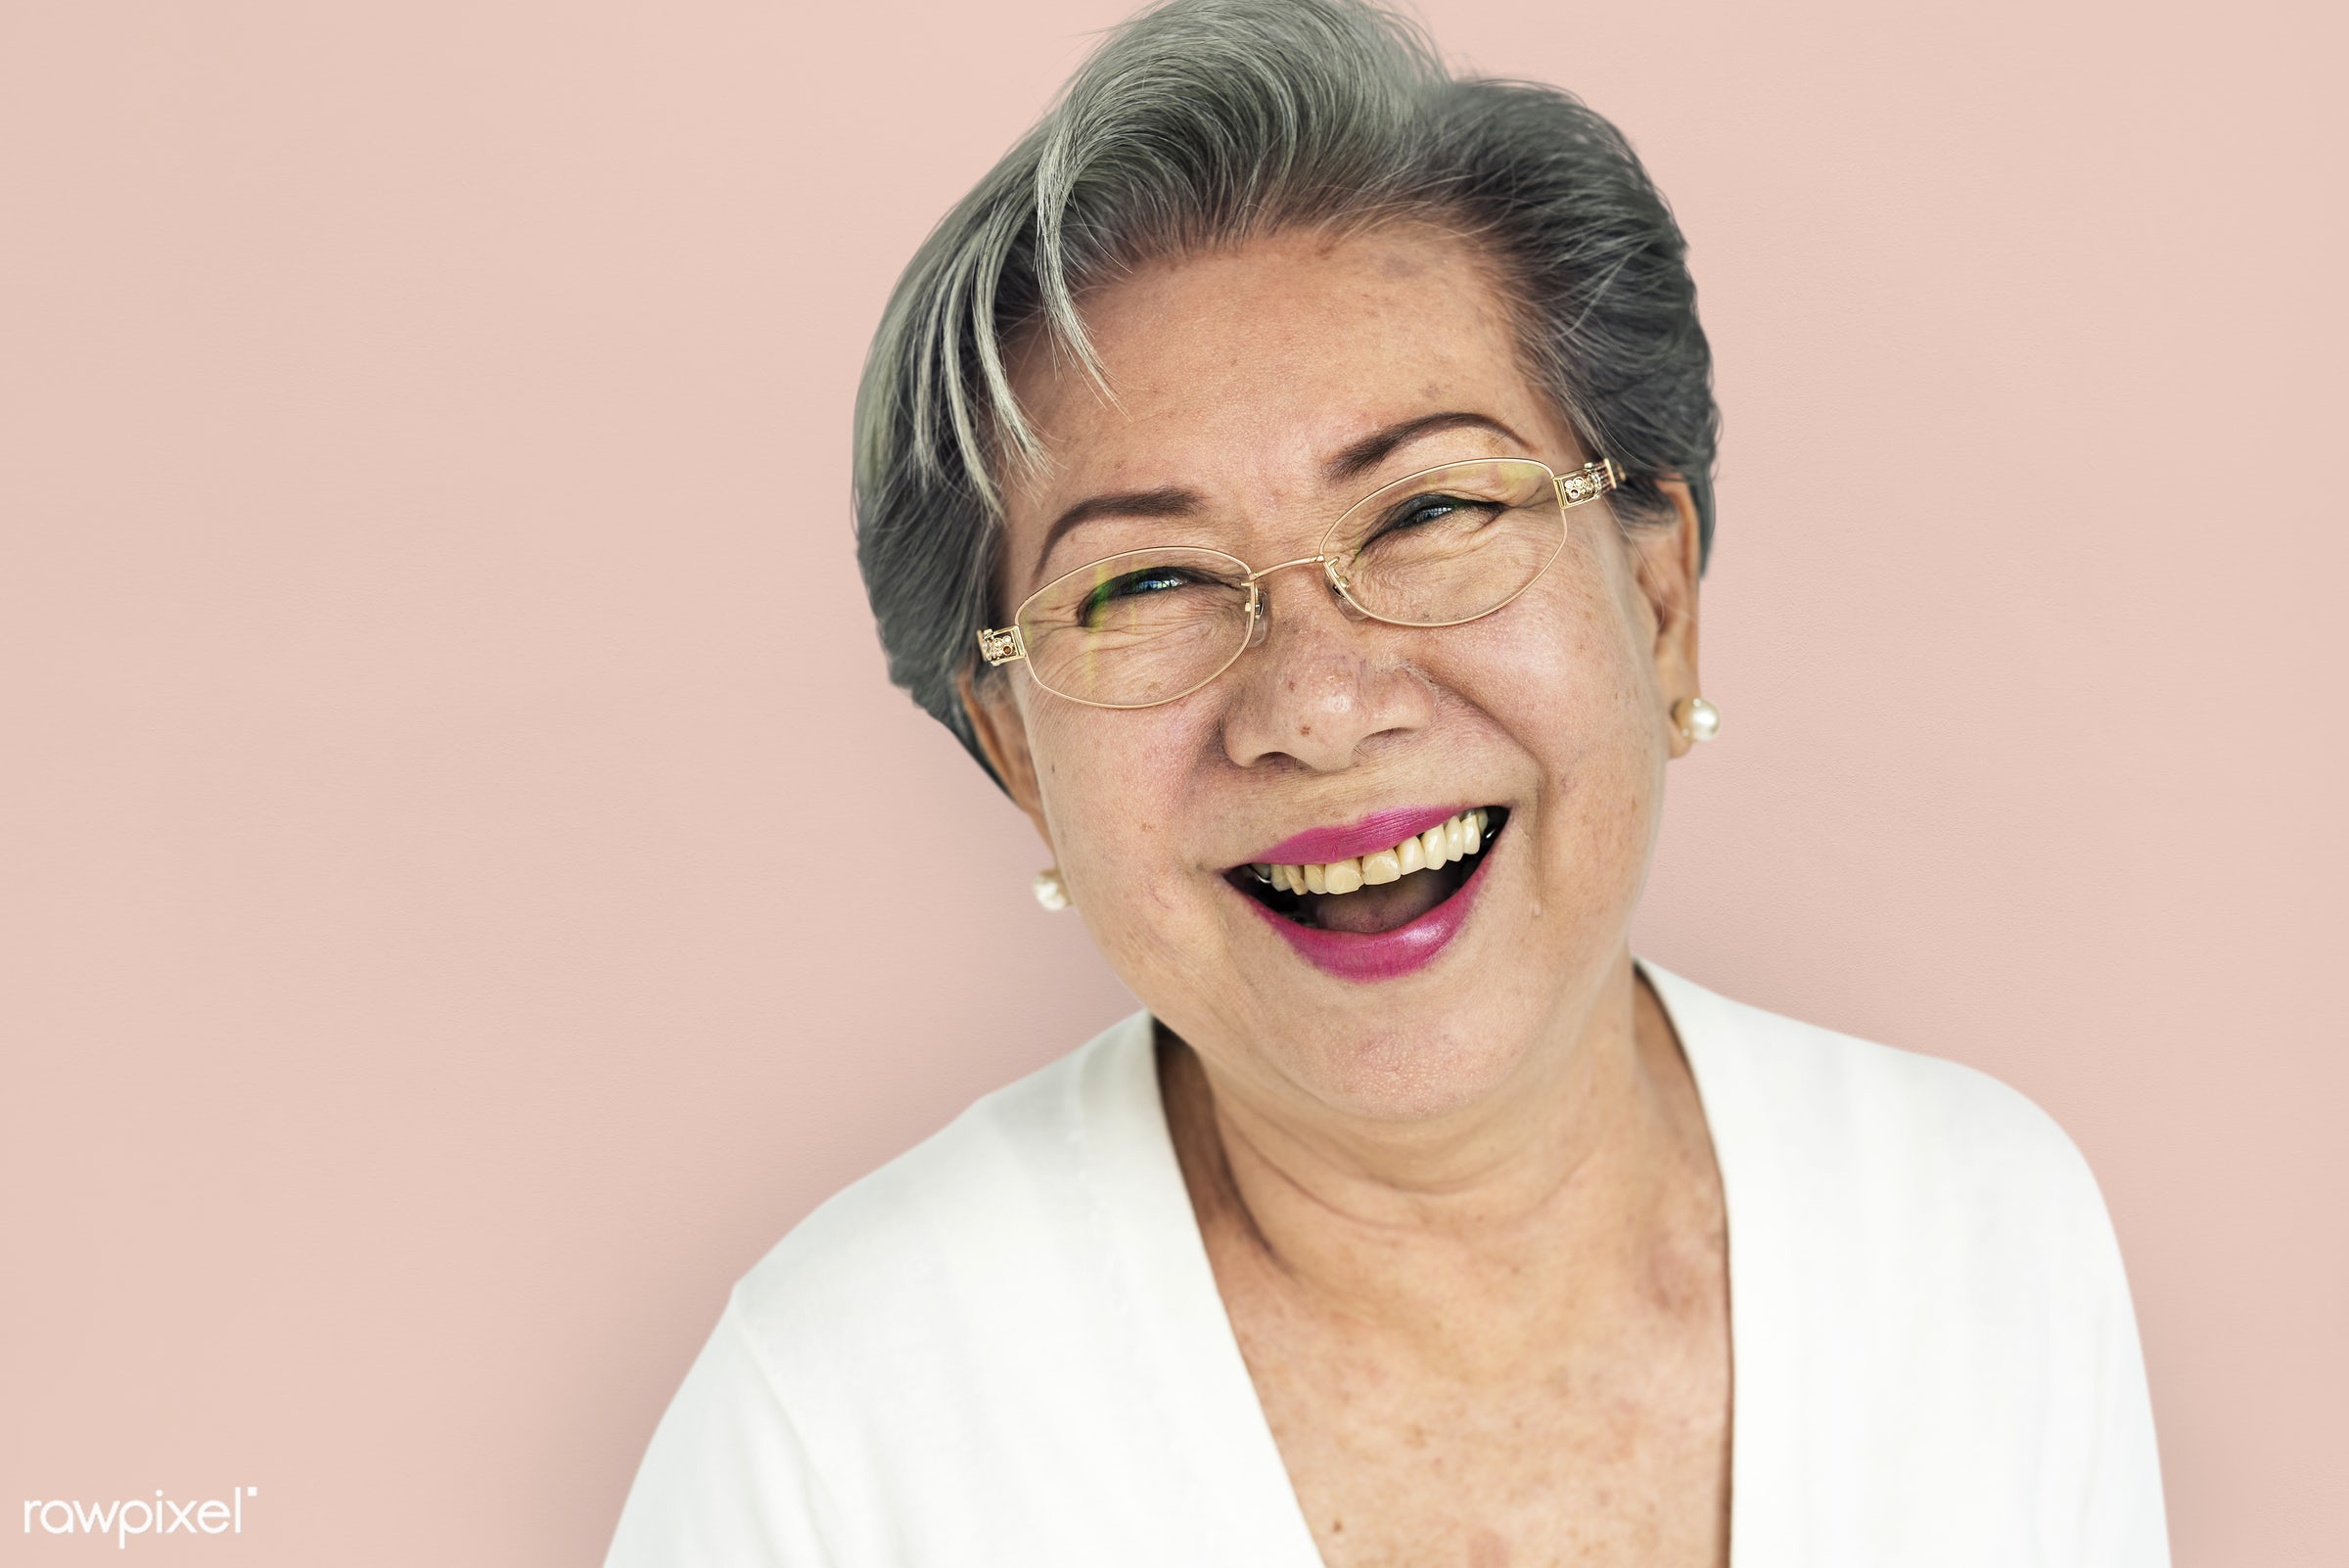 expression, studio, old, person, glasses, people, laughing, woman, happy, casual, cheerful, smiling, isolated, candid,...